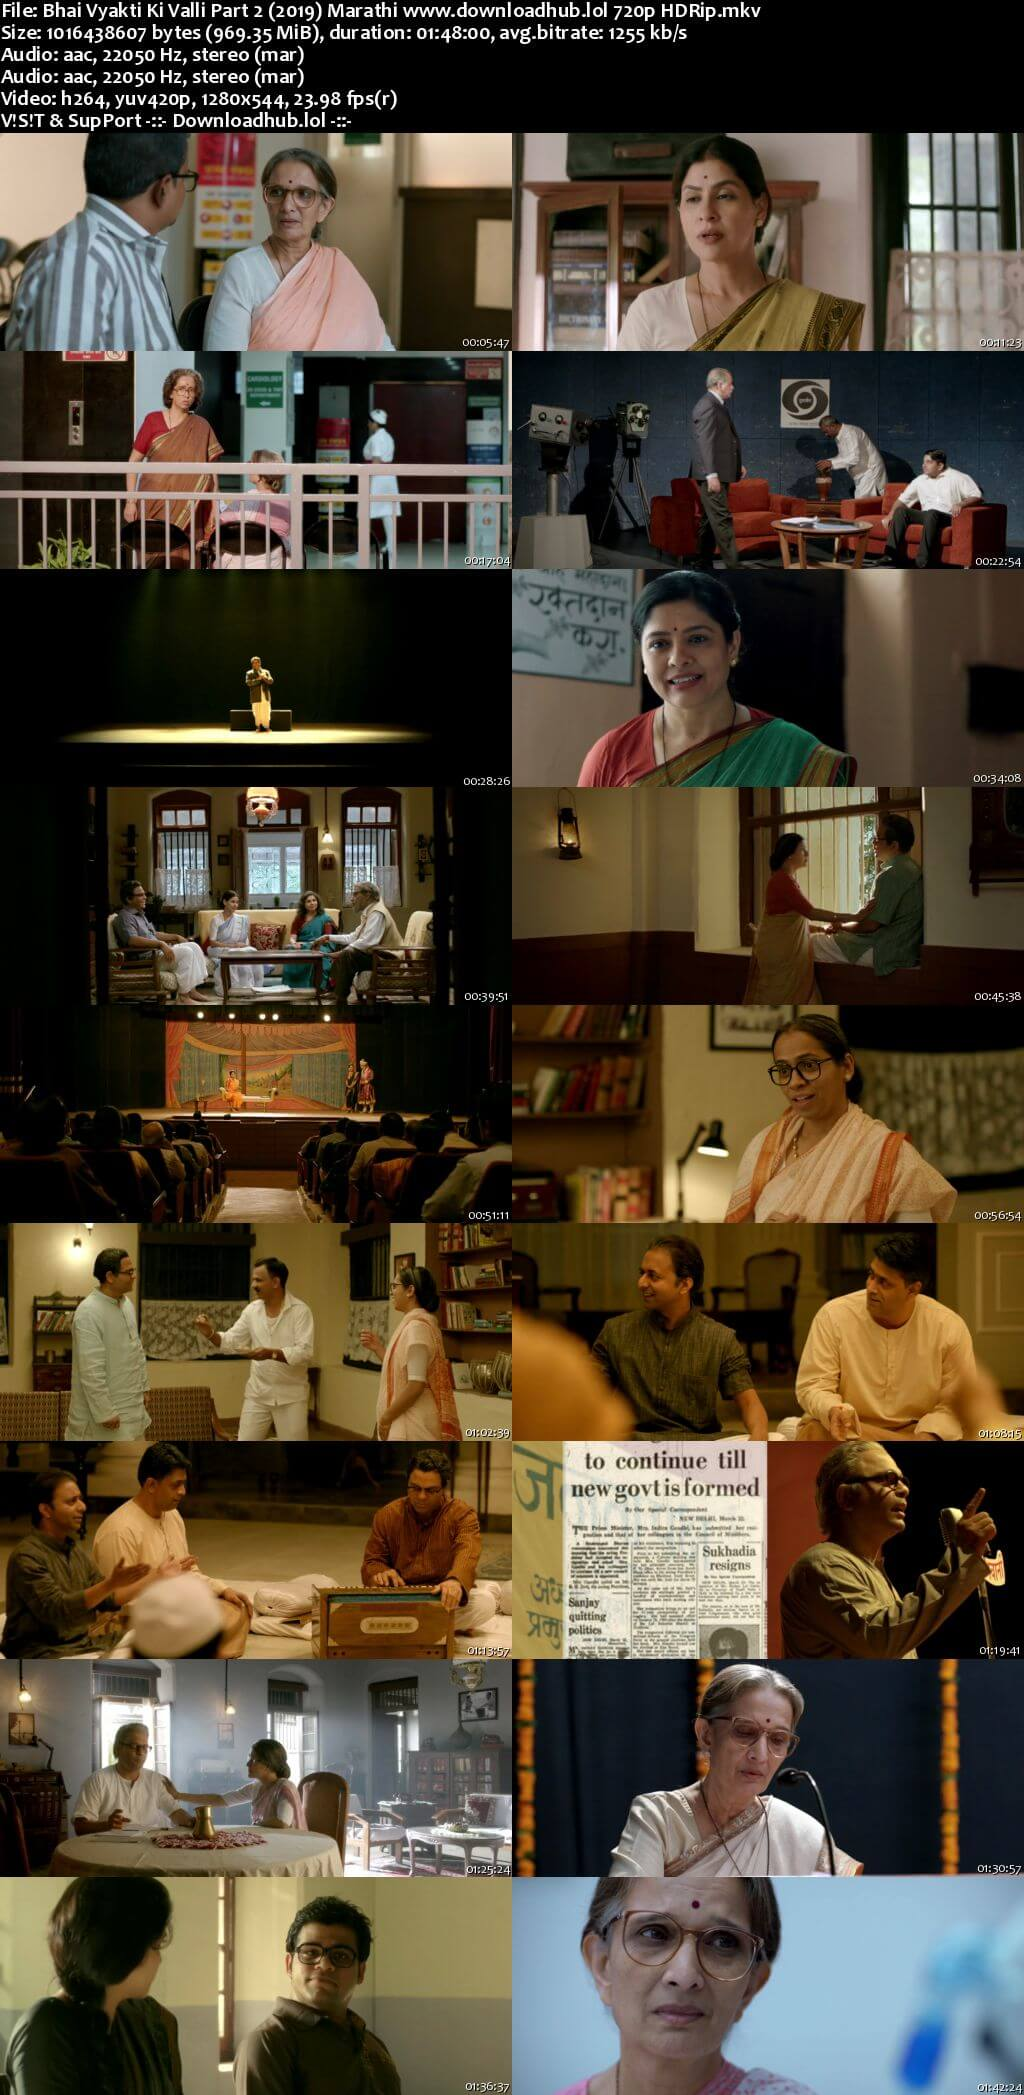 Bhai Vyakti Ki Valli Part 2 2019 Marathi 720p HDRip ESubs